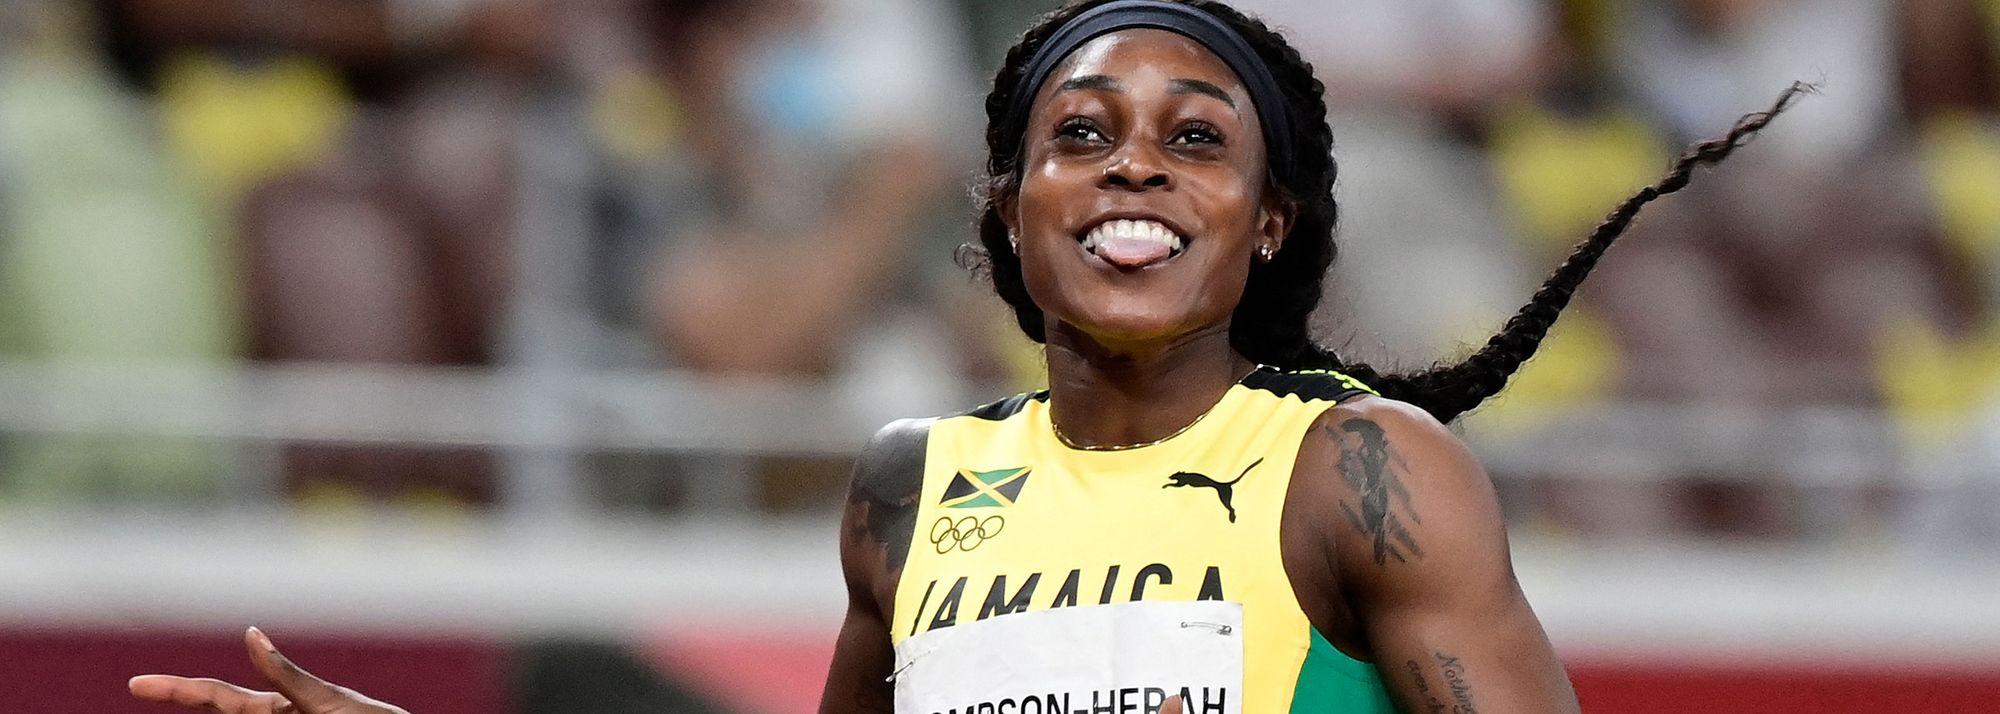 Elaine Thompson-Herah and Anita Wlodarczyk cemented their status as all-time athletics greats